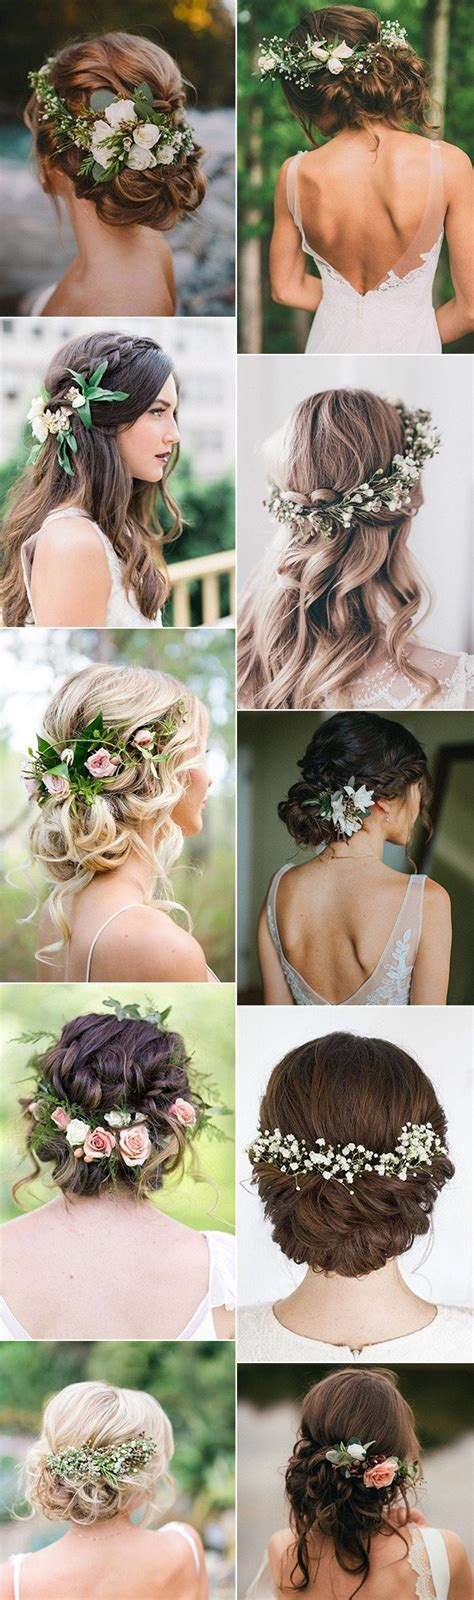 hairstyles decorated with flowers follow me on insta itsfaithelizabeth wedding hair